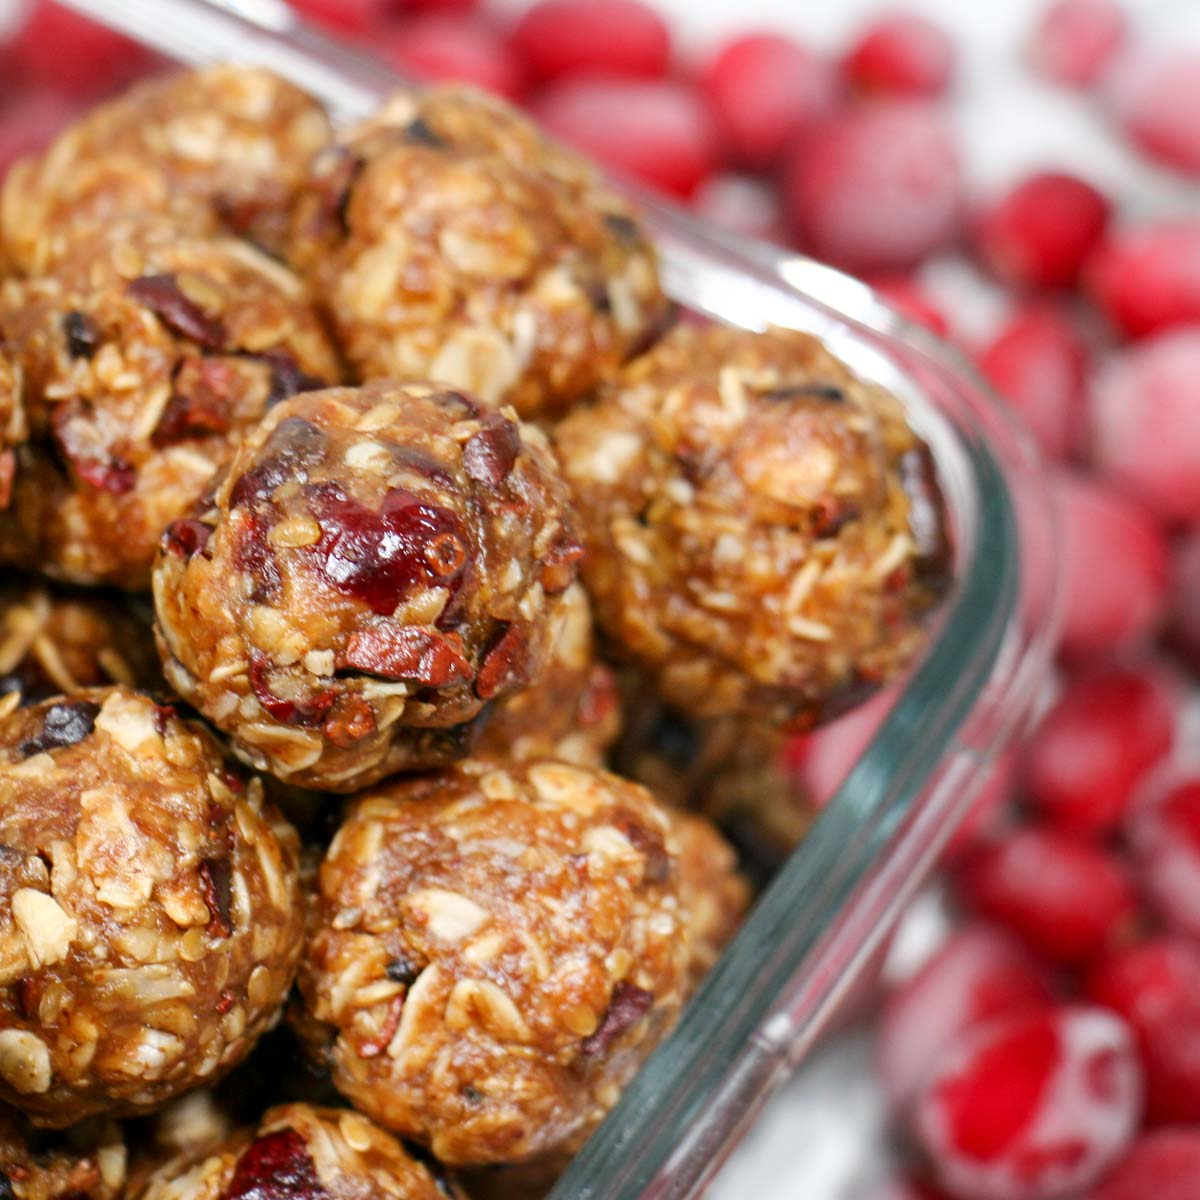 Cranberry Oatmeal Cookie Bites with Cacao: A Healthy, No Bake Treat